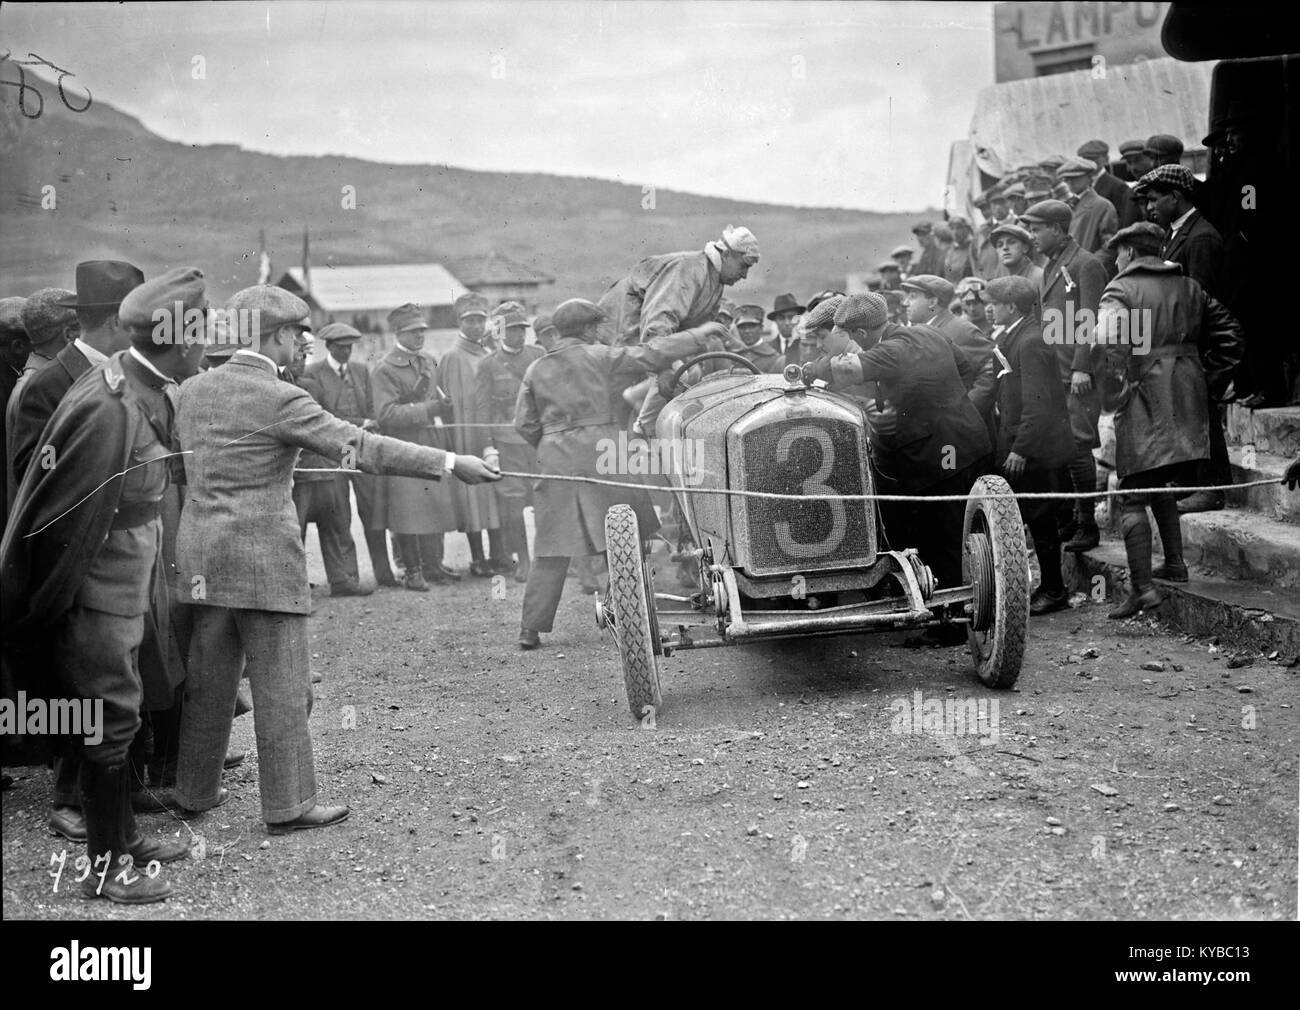 Maurice Béquet at the 1922 Coppa Florio (2) - Stock Image